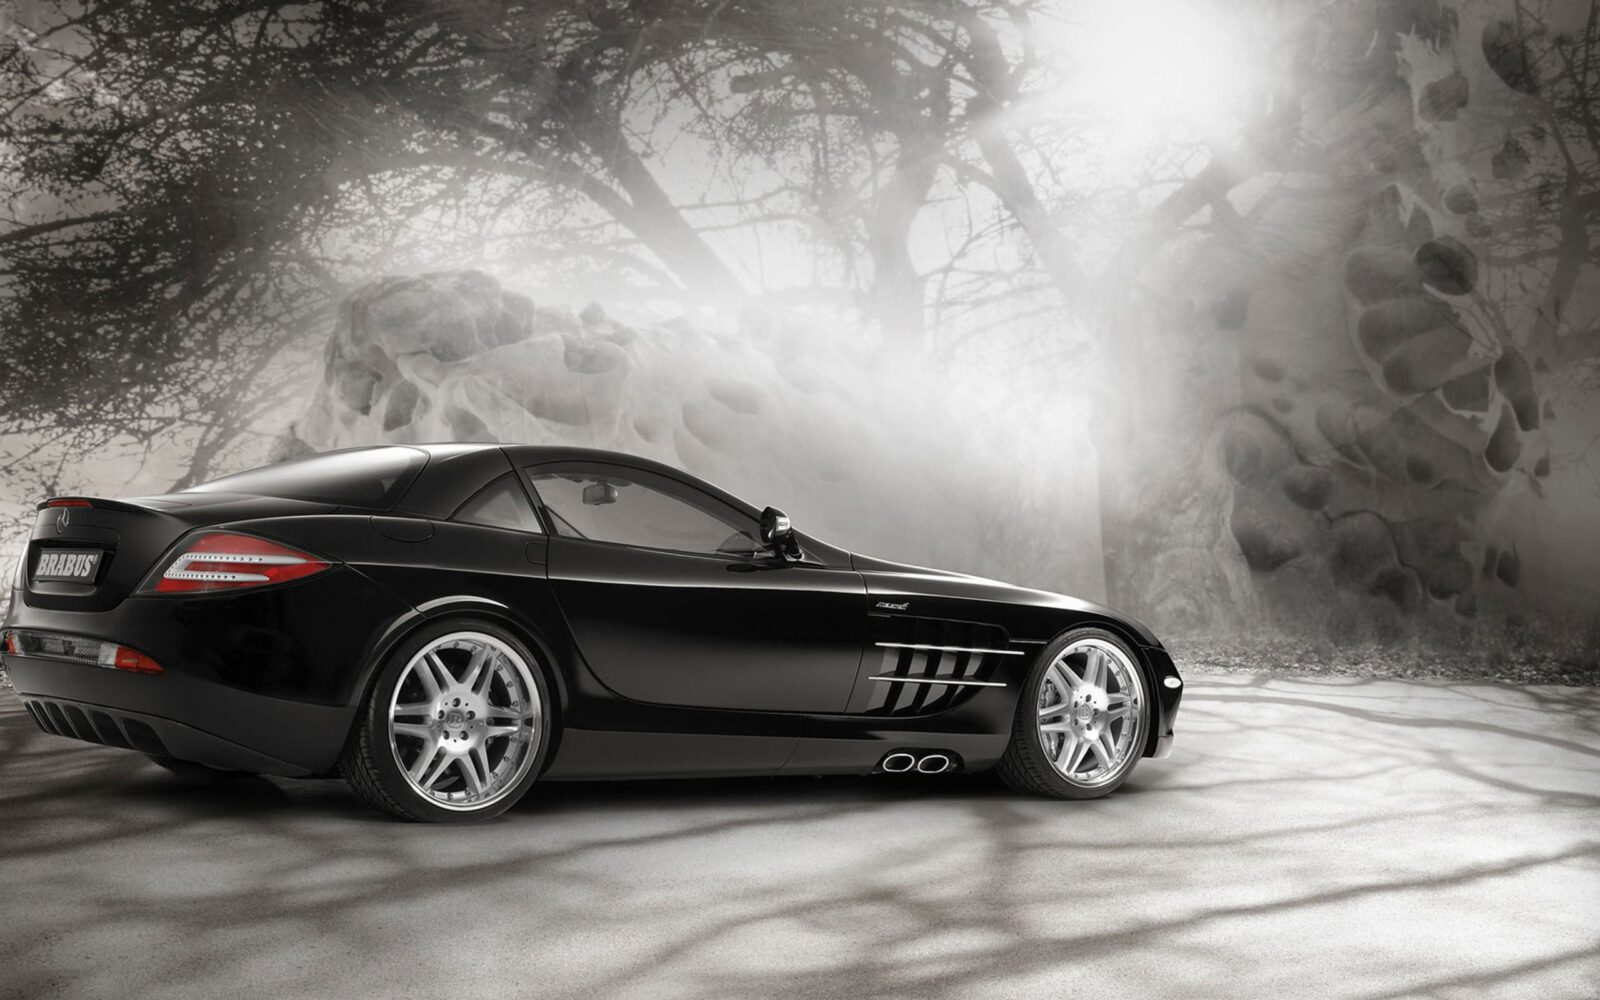 Mercedes slr mclaren wallpapers hd download for Mercedes benz na